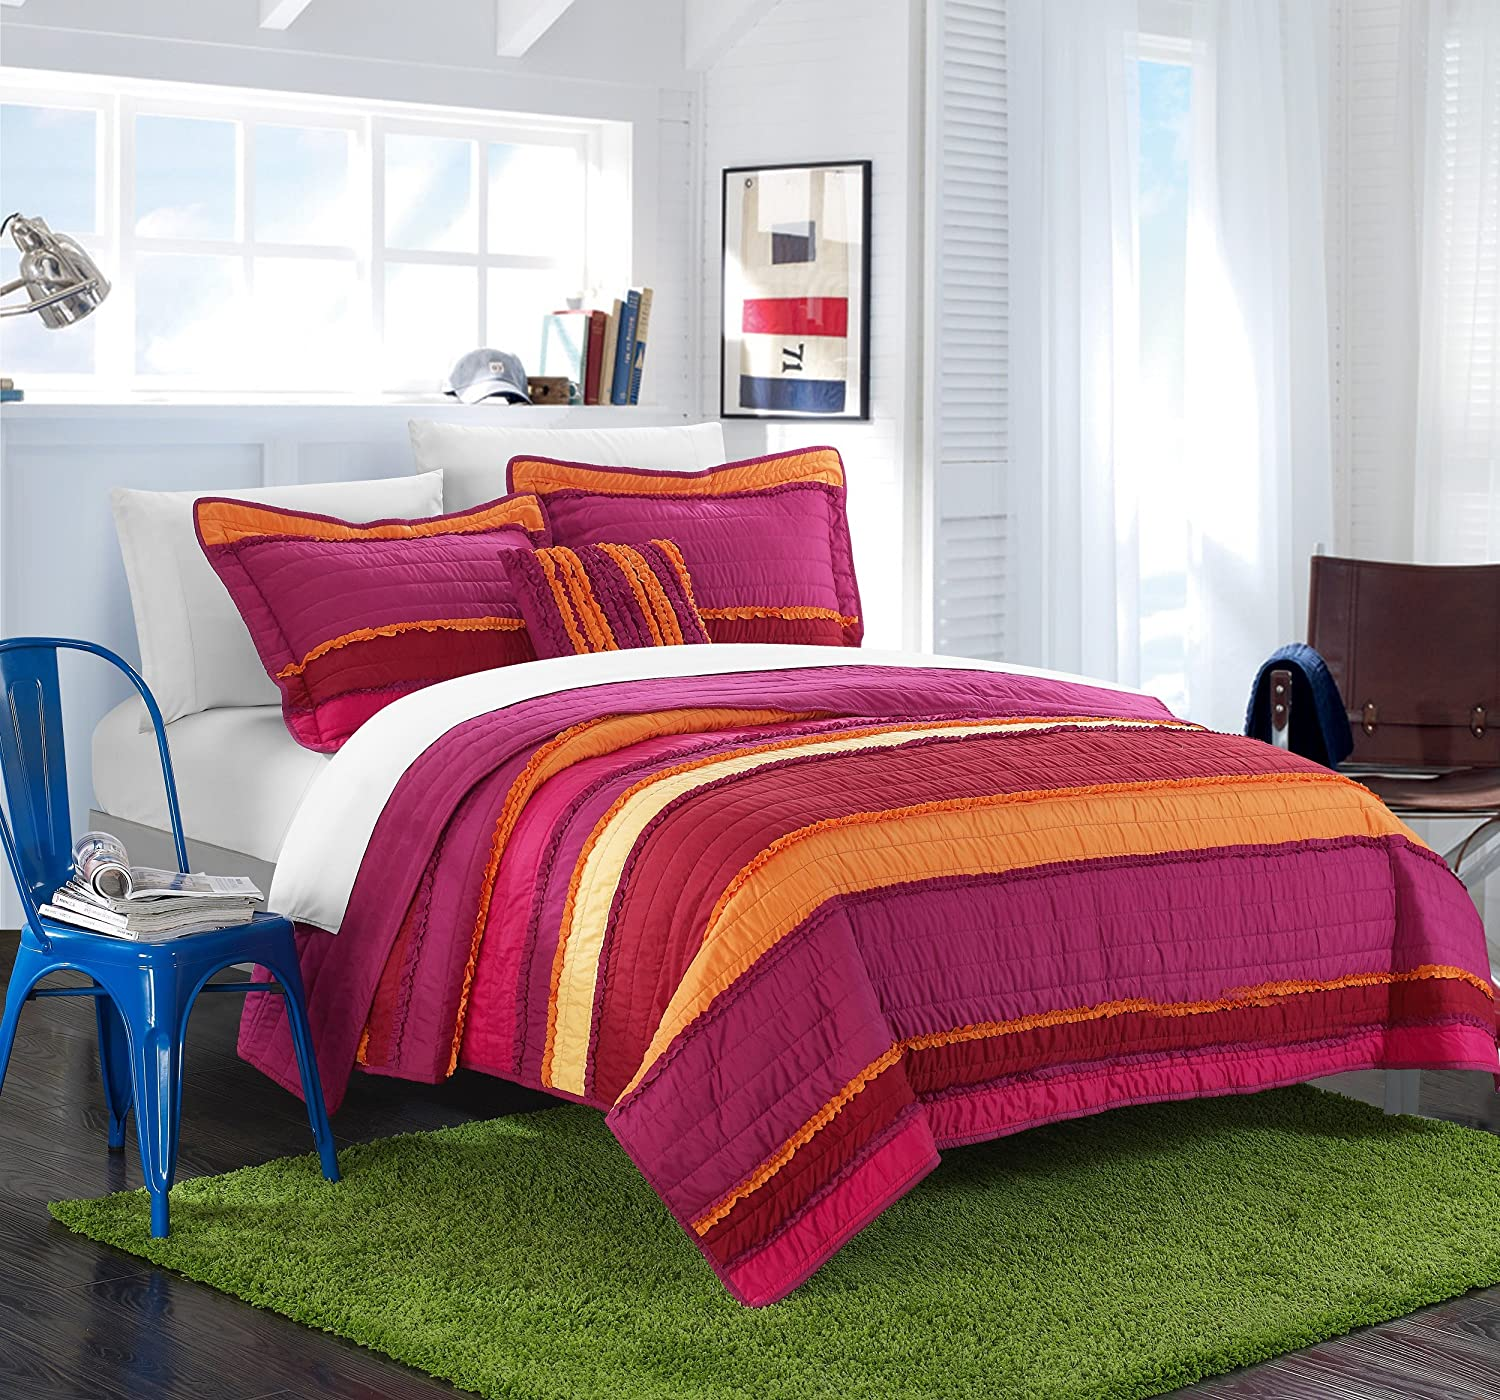 Chic Home 3 Piece Italica Ruffled & Rouched Details Pieced Multi Colored Global Design Quilt Set, Twin, Purple